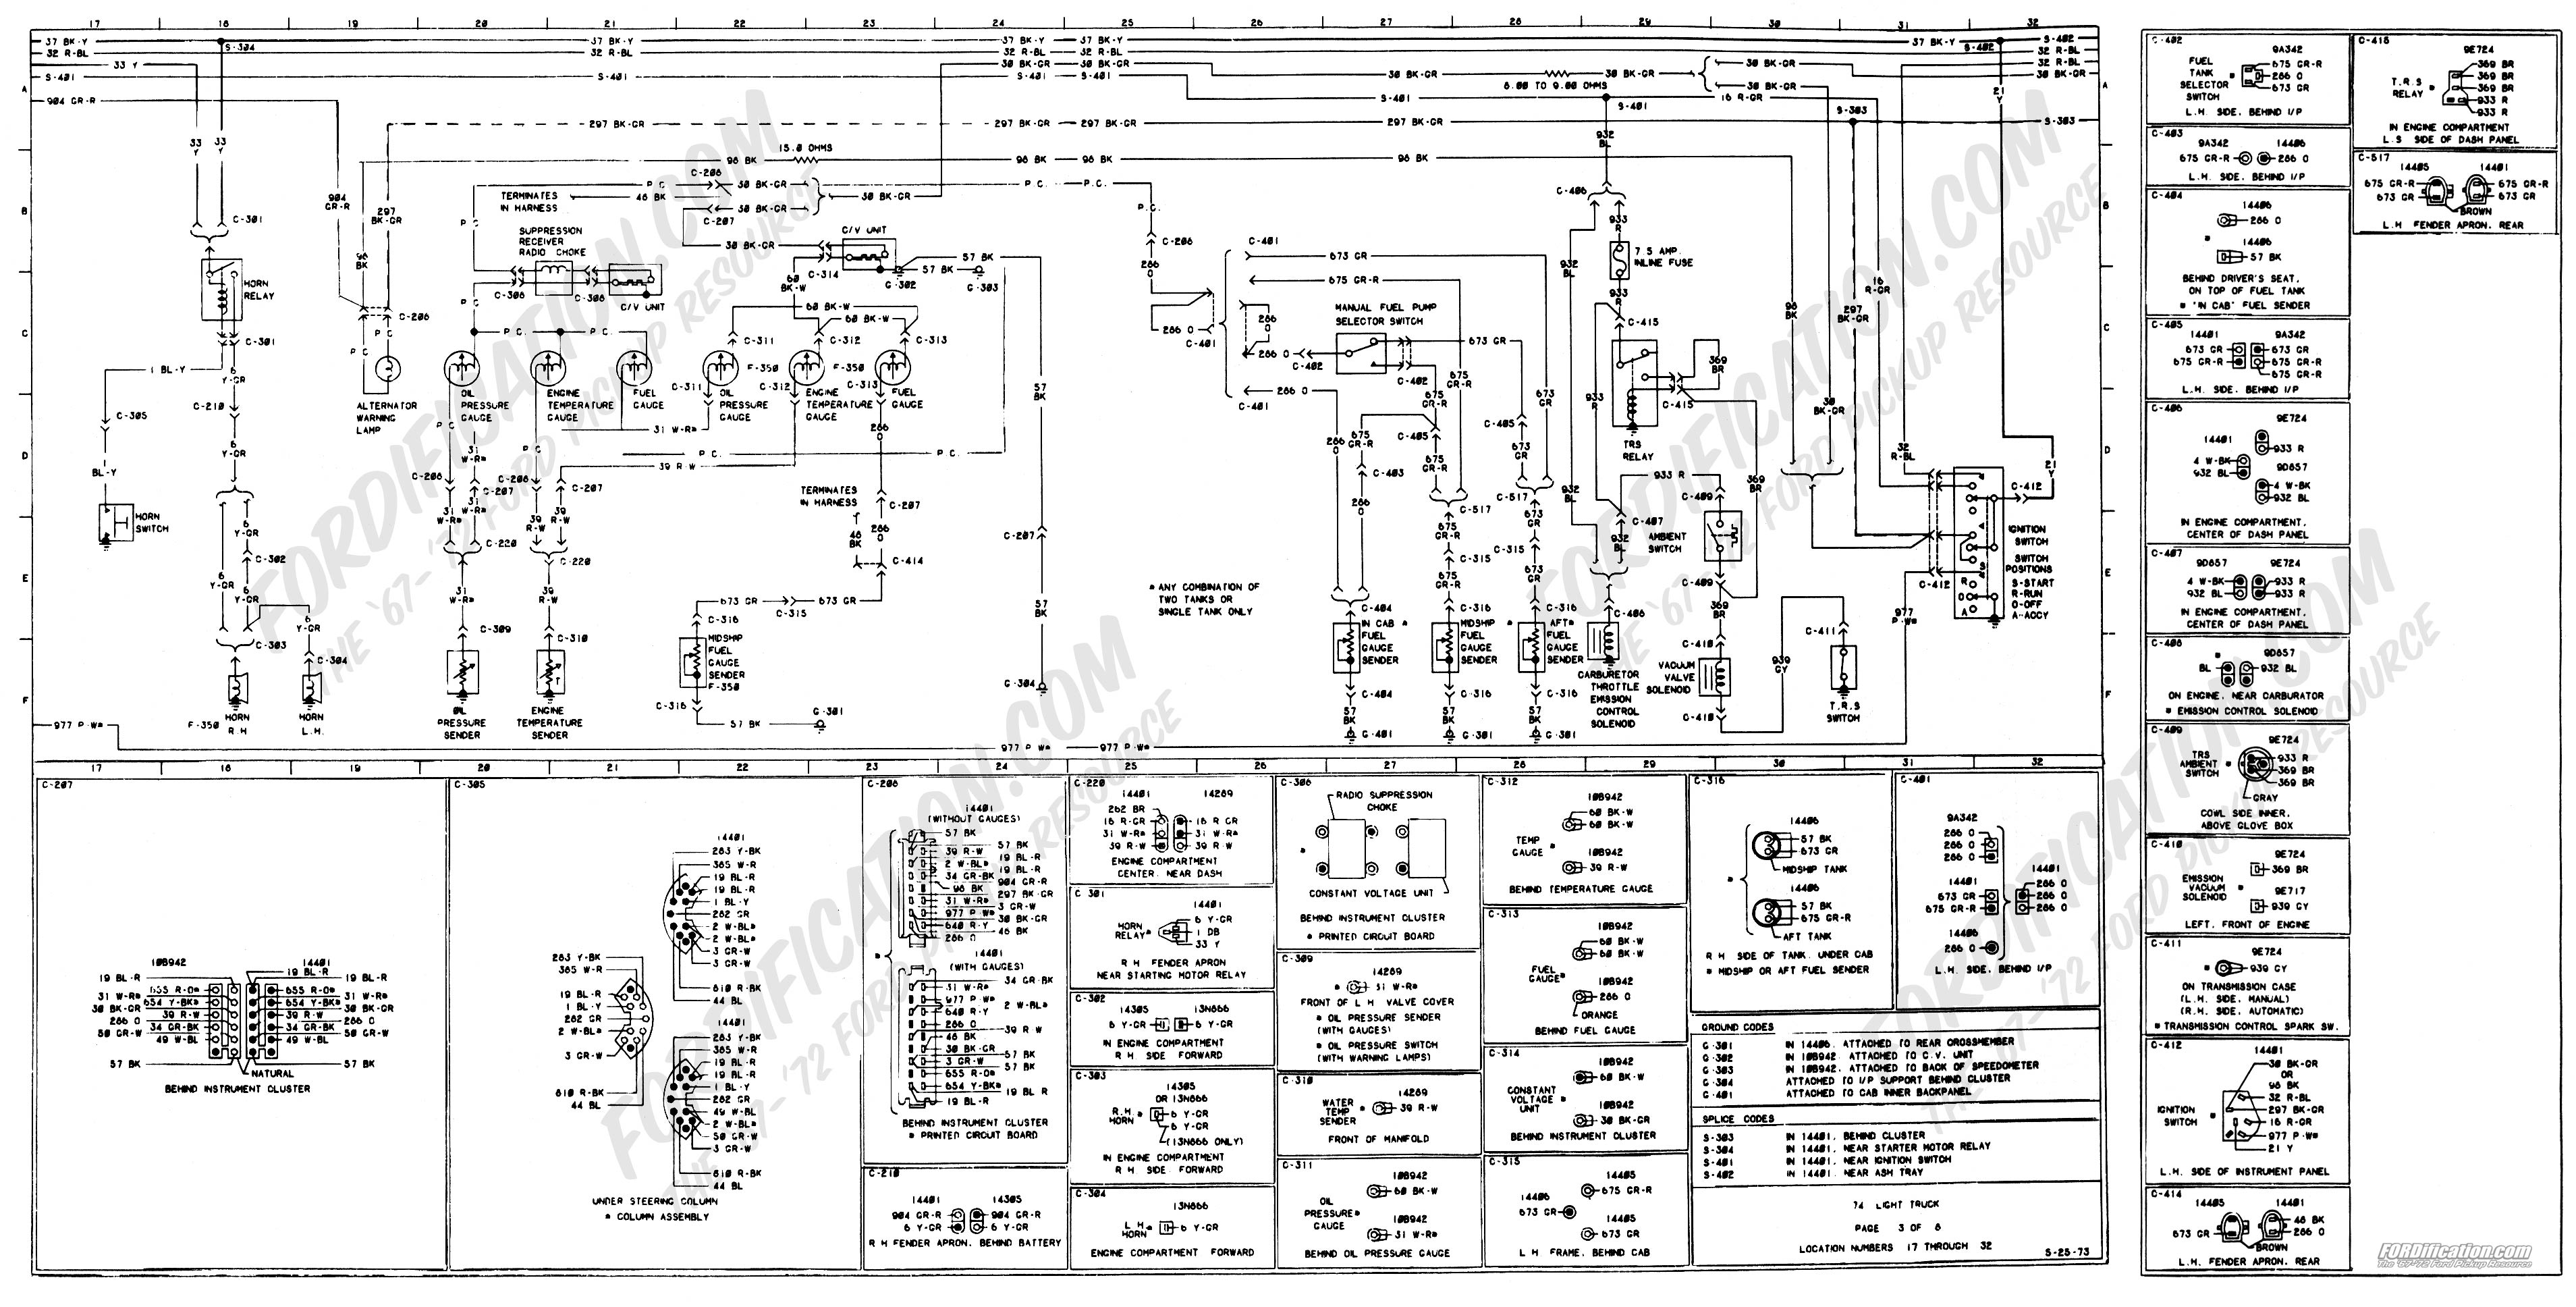 1995 ford l9000 wiring diagram wiring data rh unroutine co Ford F -350 Wiring Diagram Ford Truck Electrical Diagrams